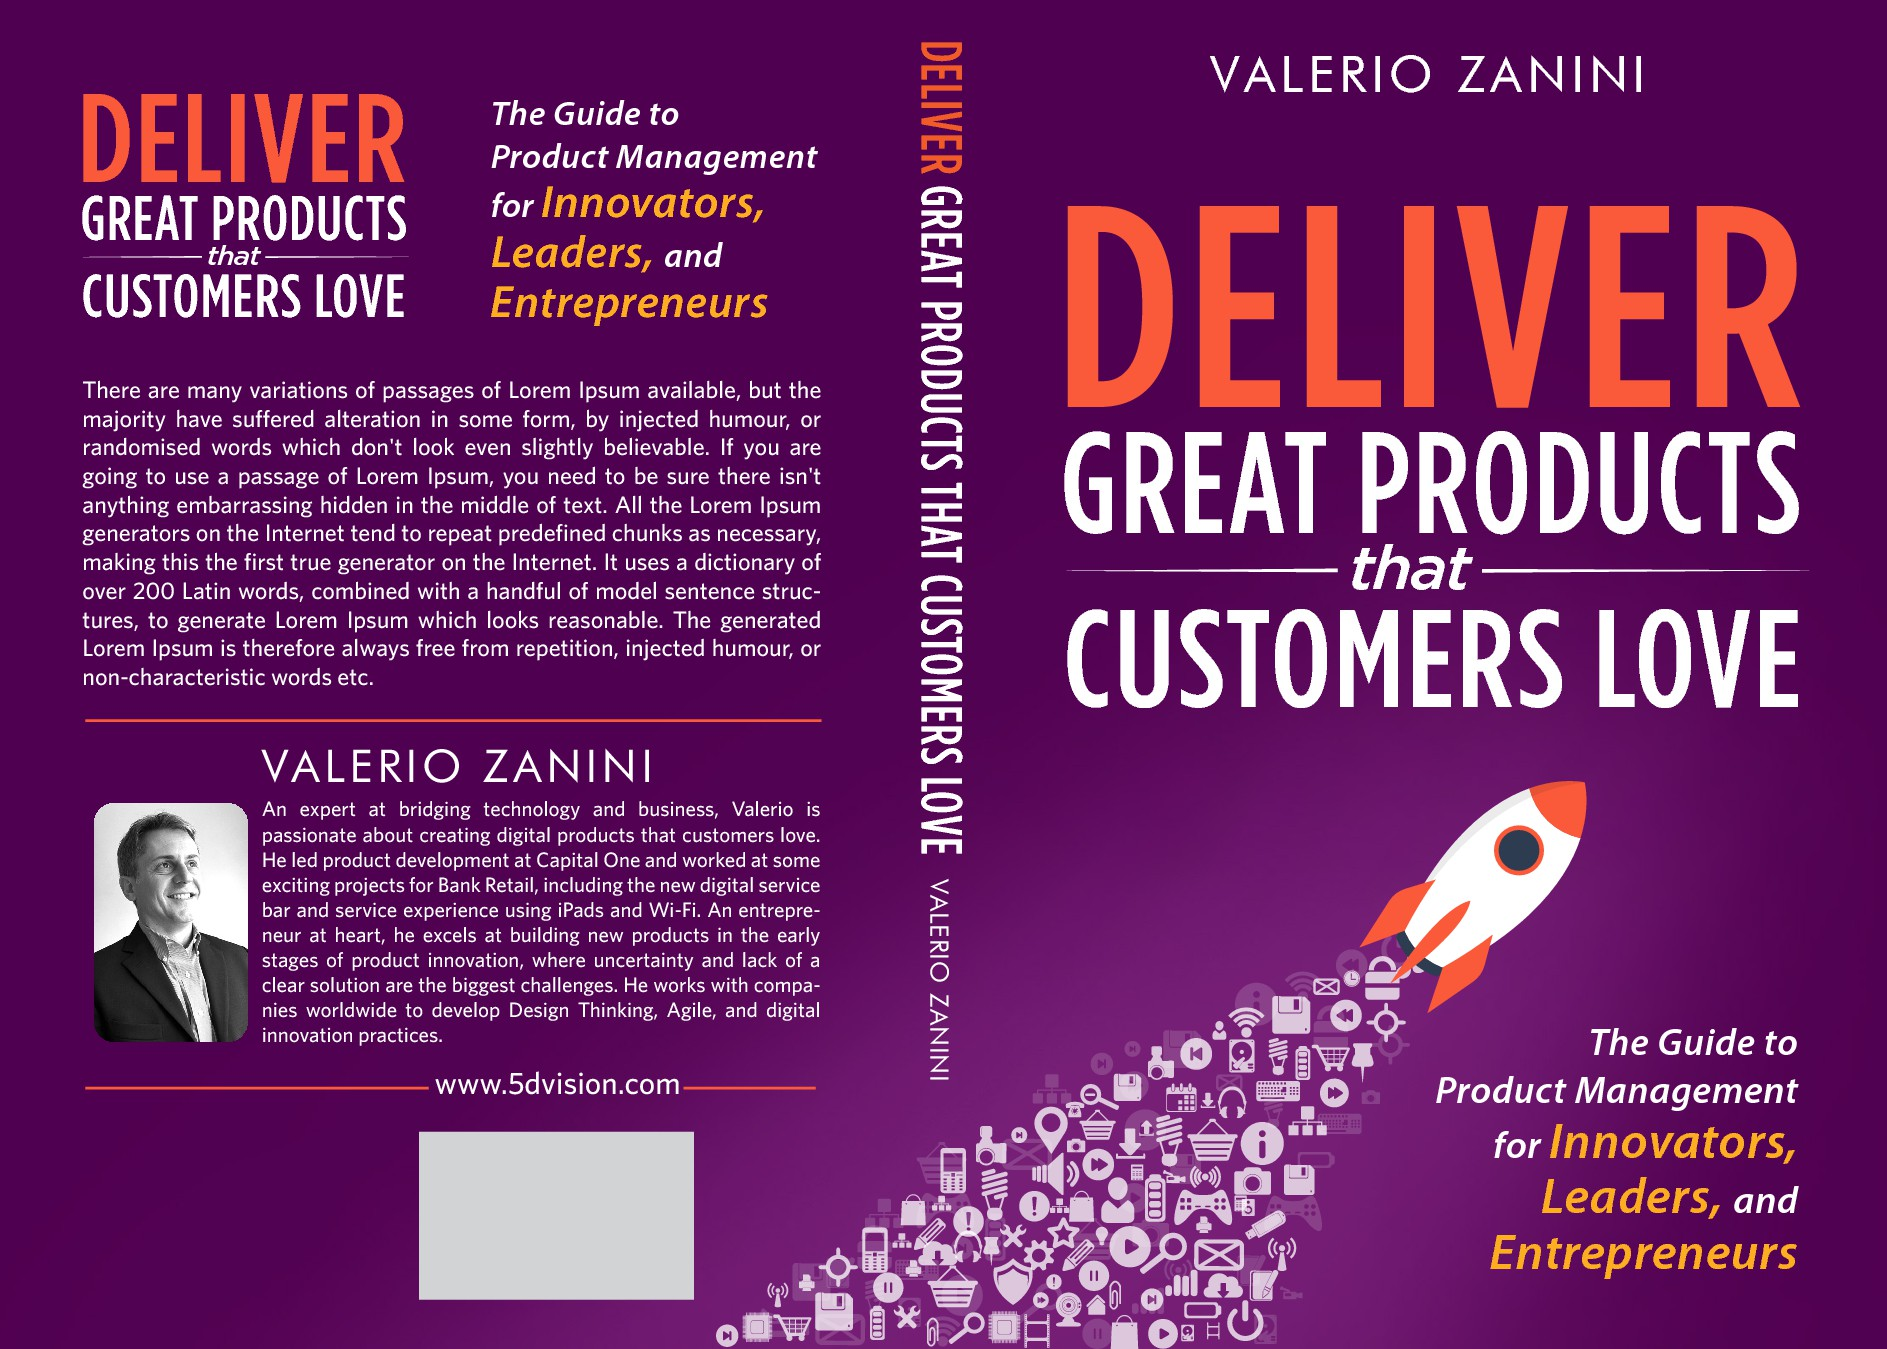 Create cover design for new book on digital innovation